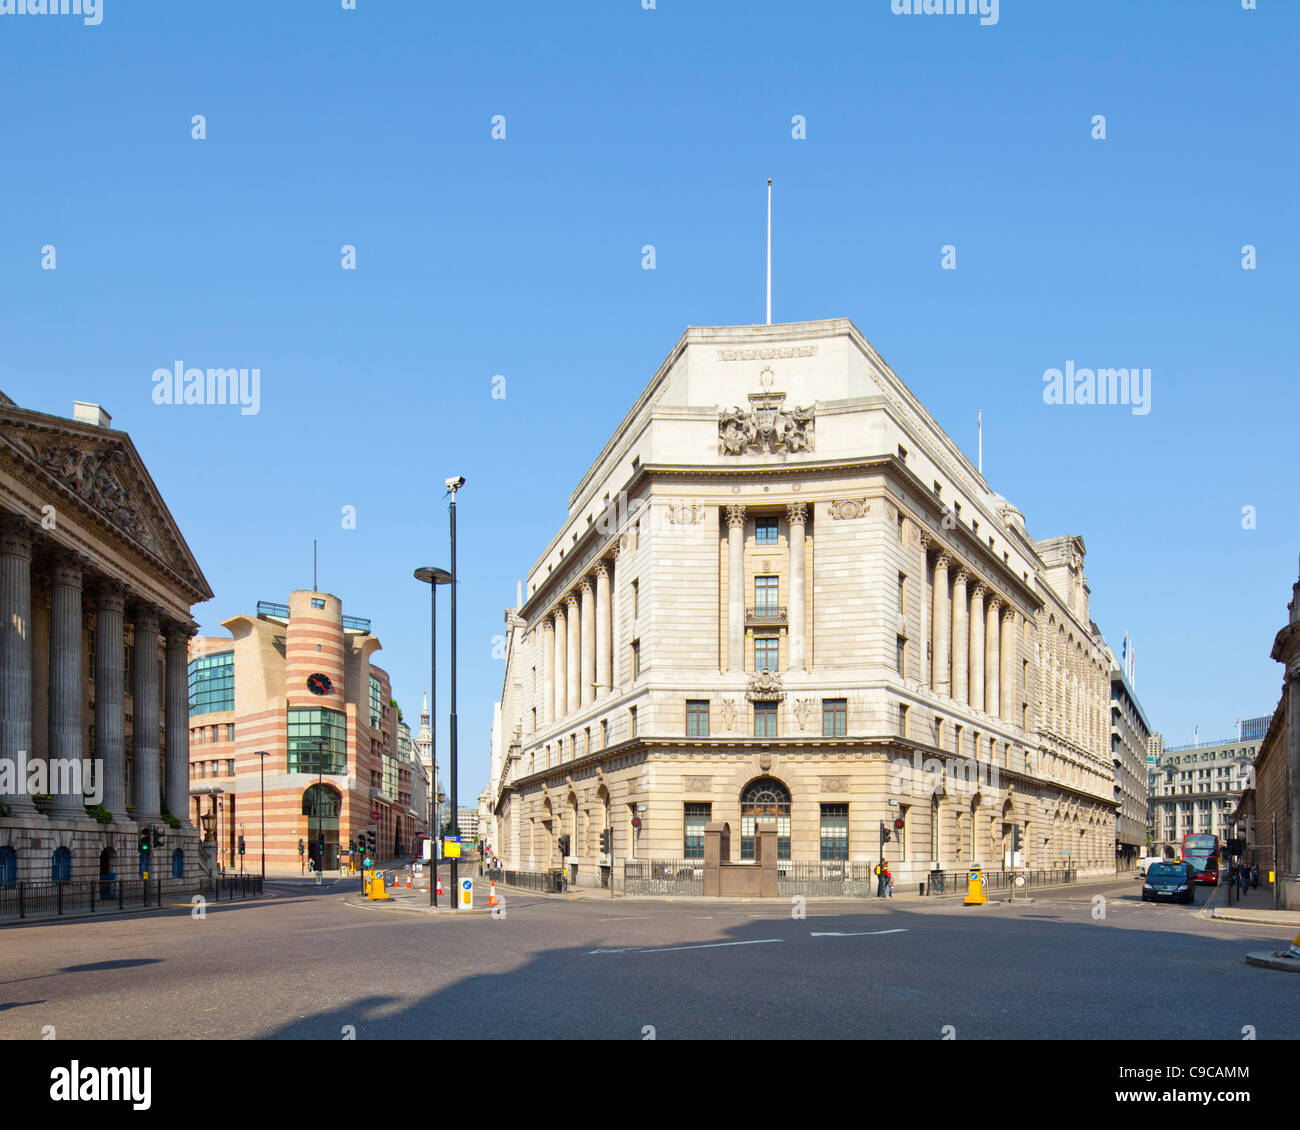 National Westminster NatWest Bank HQ - Stock Image